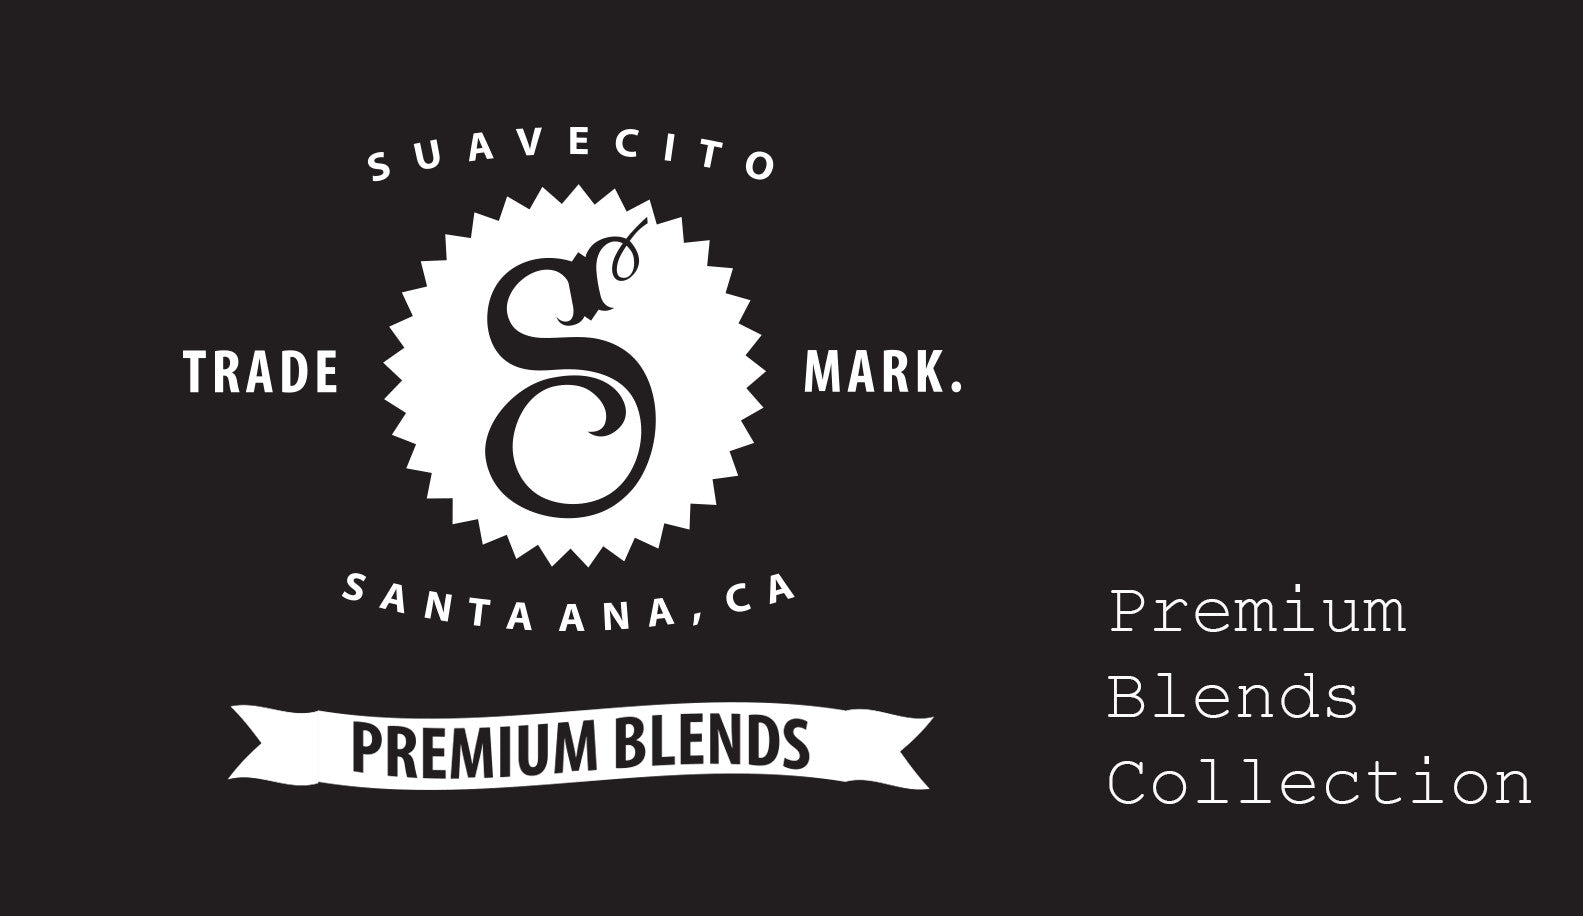 Premium Blends Collection